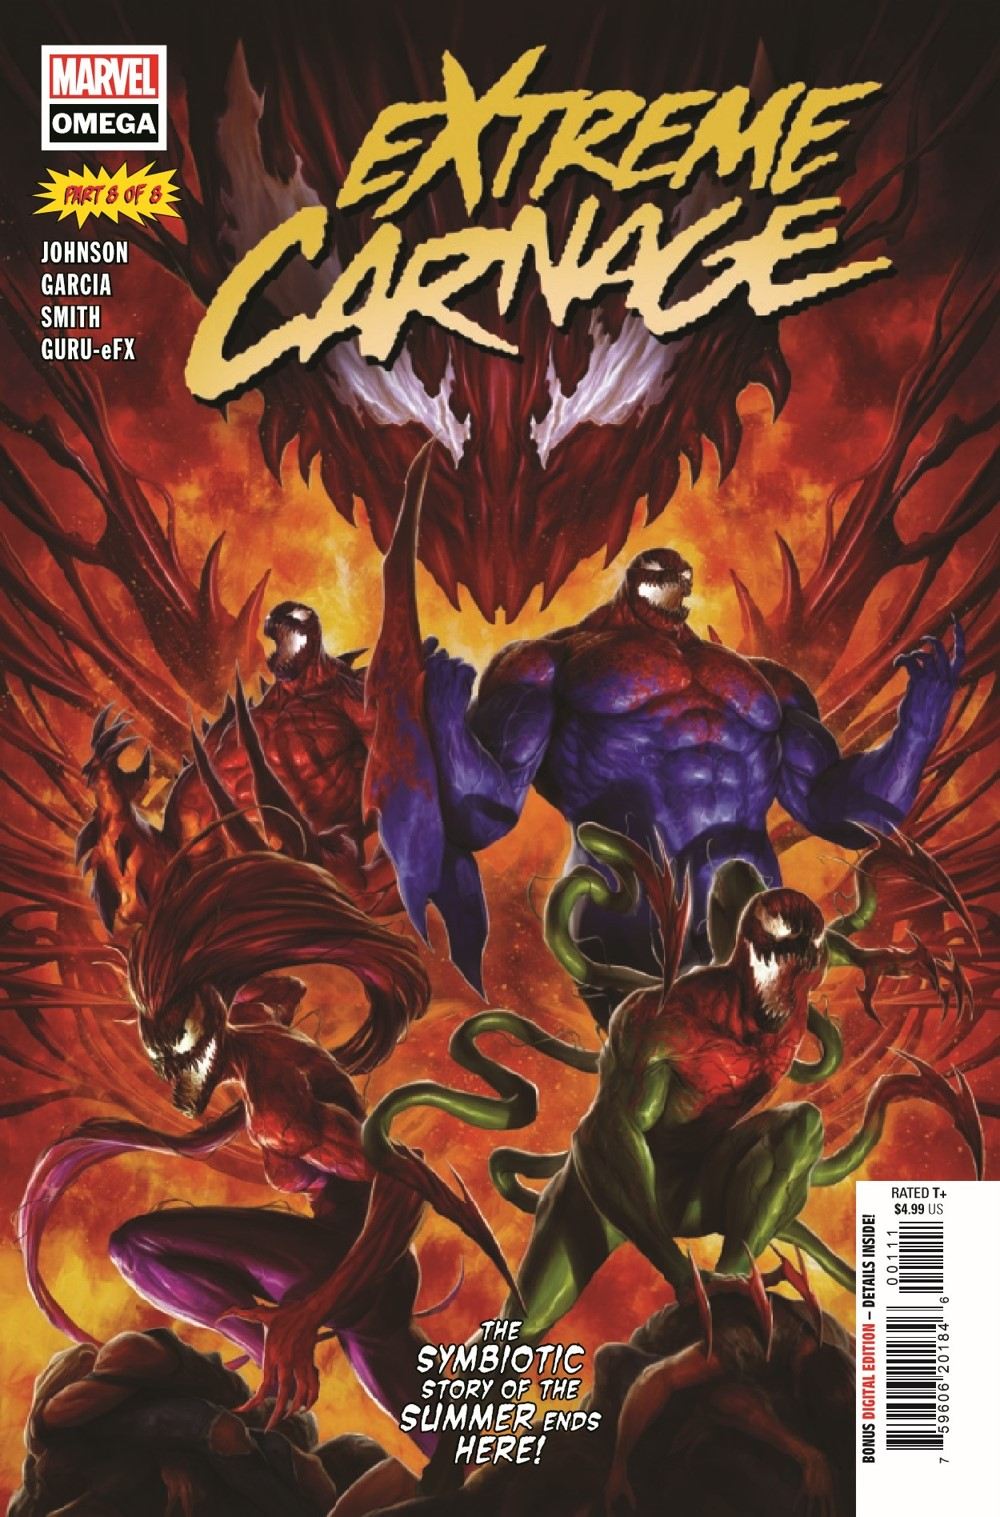 EXTCARNO2021001_Preview-1 ComicList Previews: EXTREME CARNAGE OMEGA #1